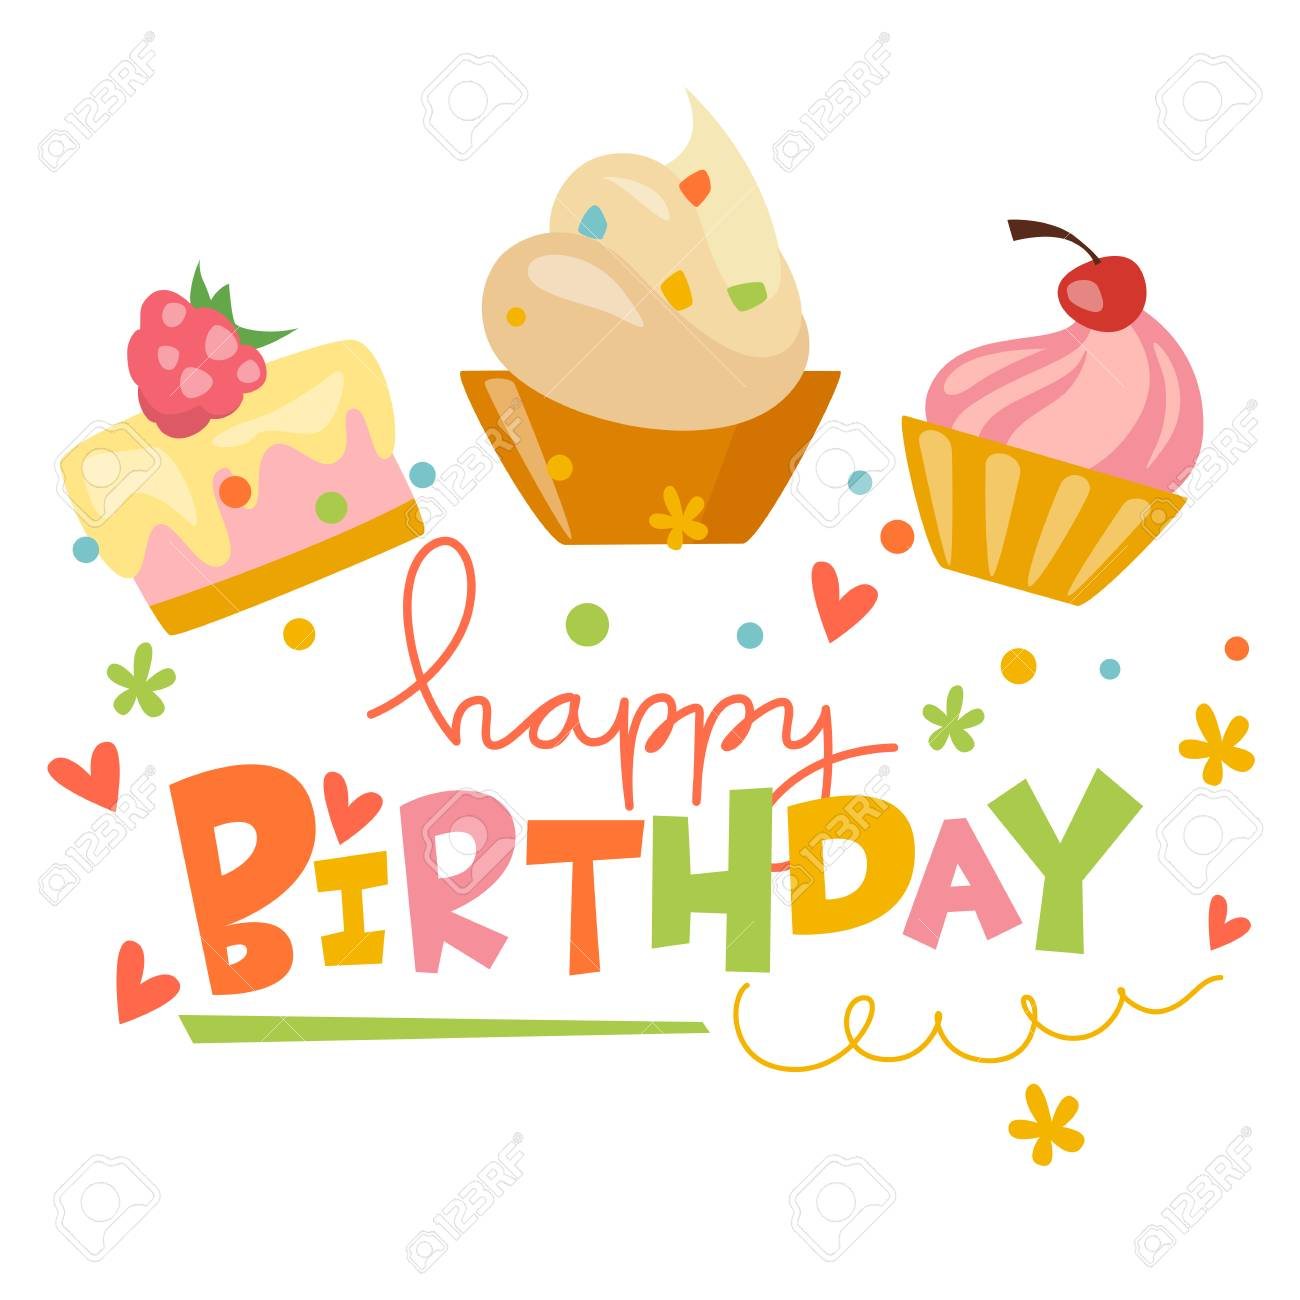 Happy Birthday Vector Card With Cute Cakes Royalty Free Cliparts